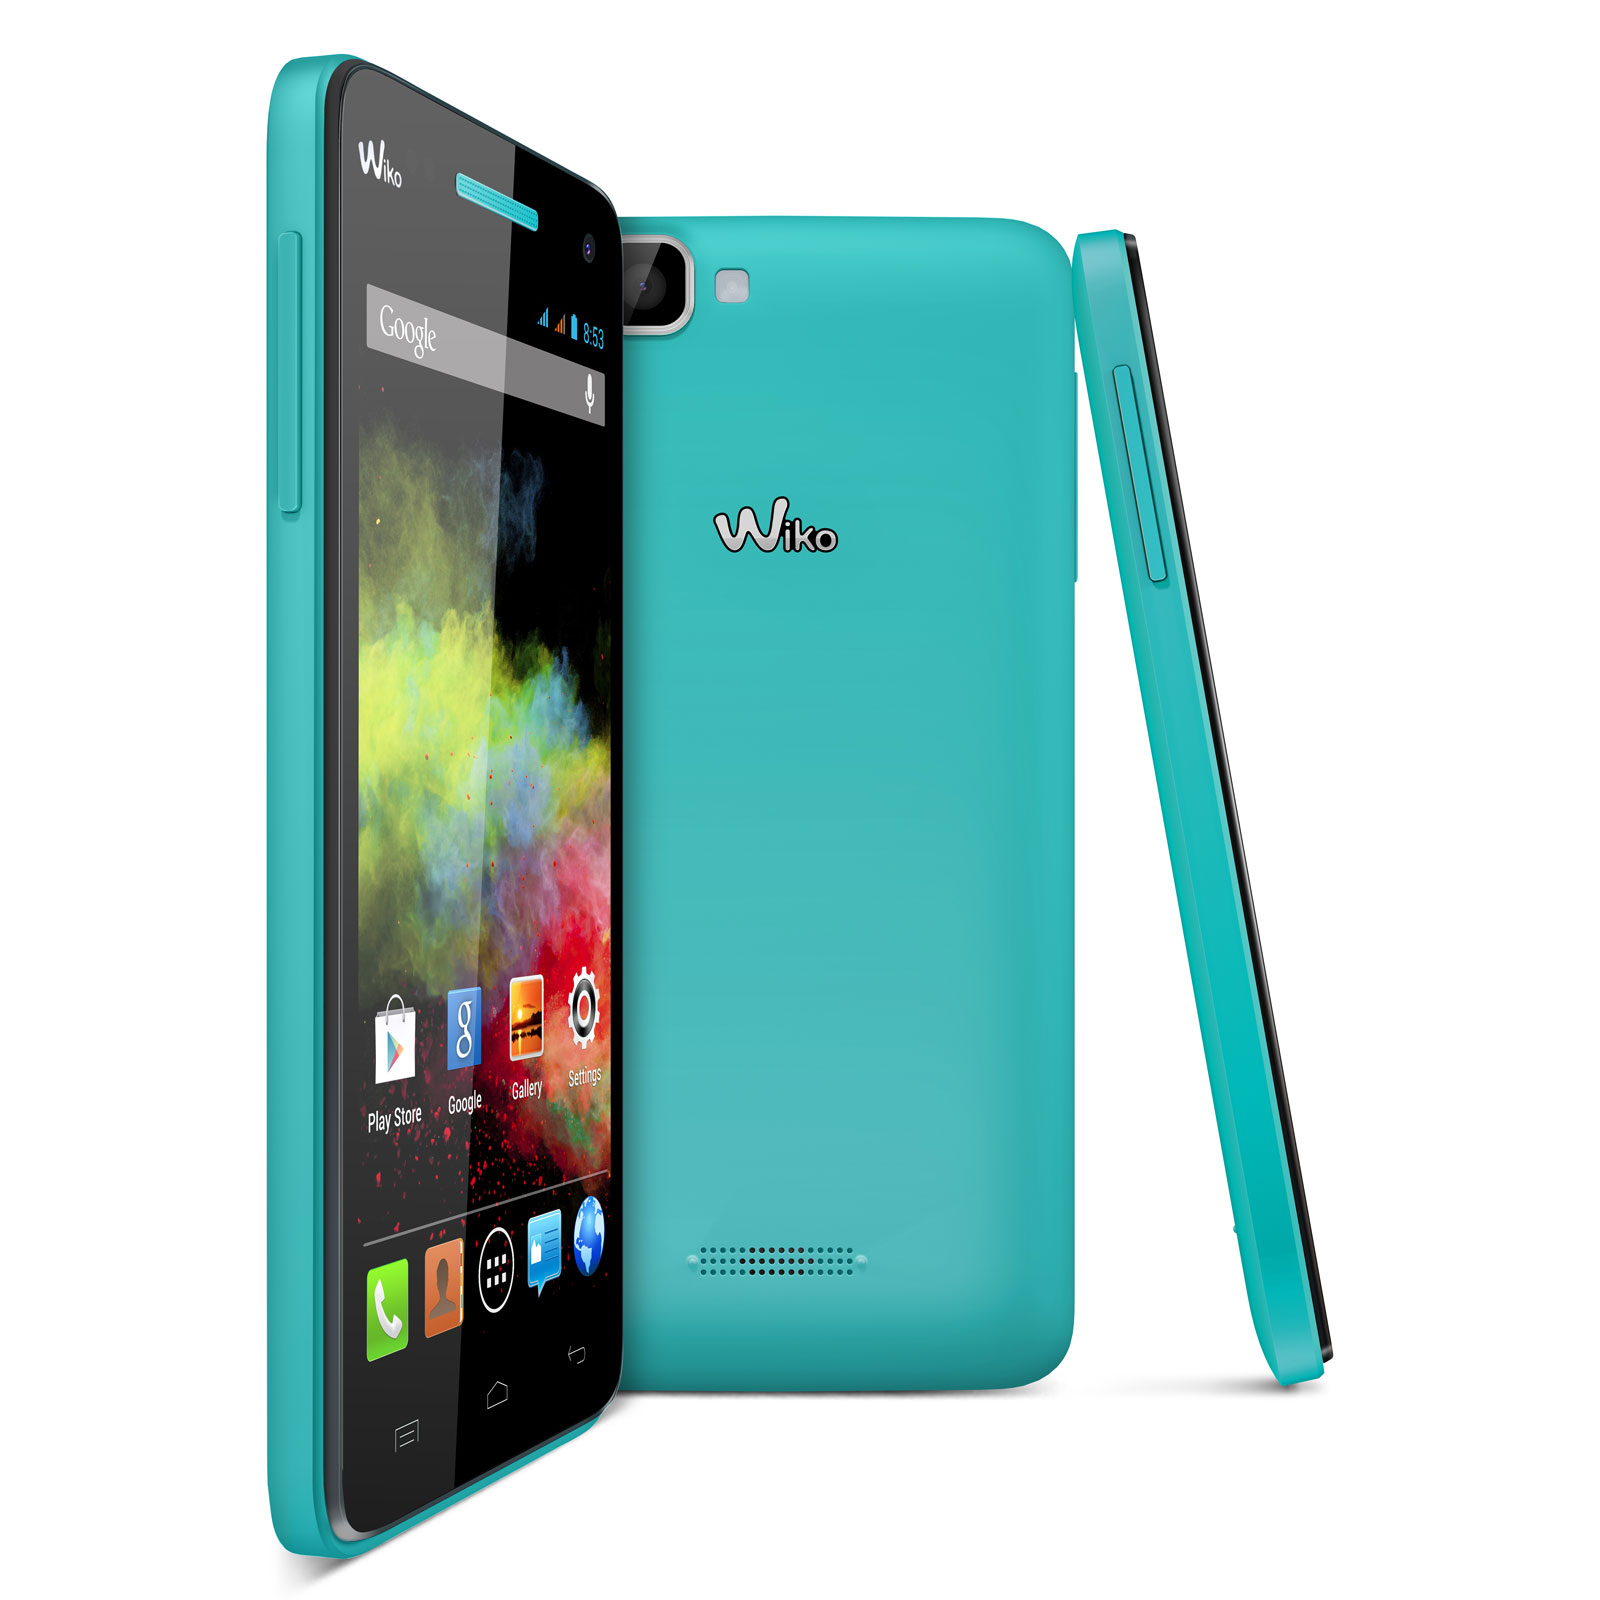 wiko rainbow turquoise mobile smartphone wiko sur ldlc. Black Bedroom Furniture Sets. Home Design Ideas